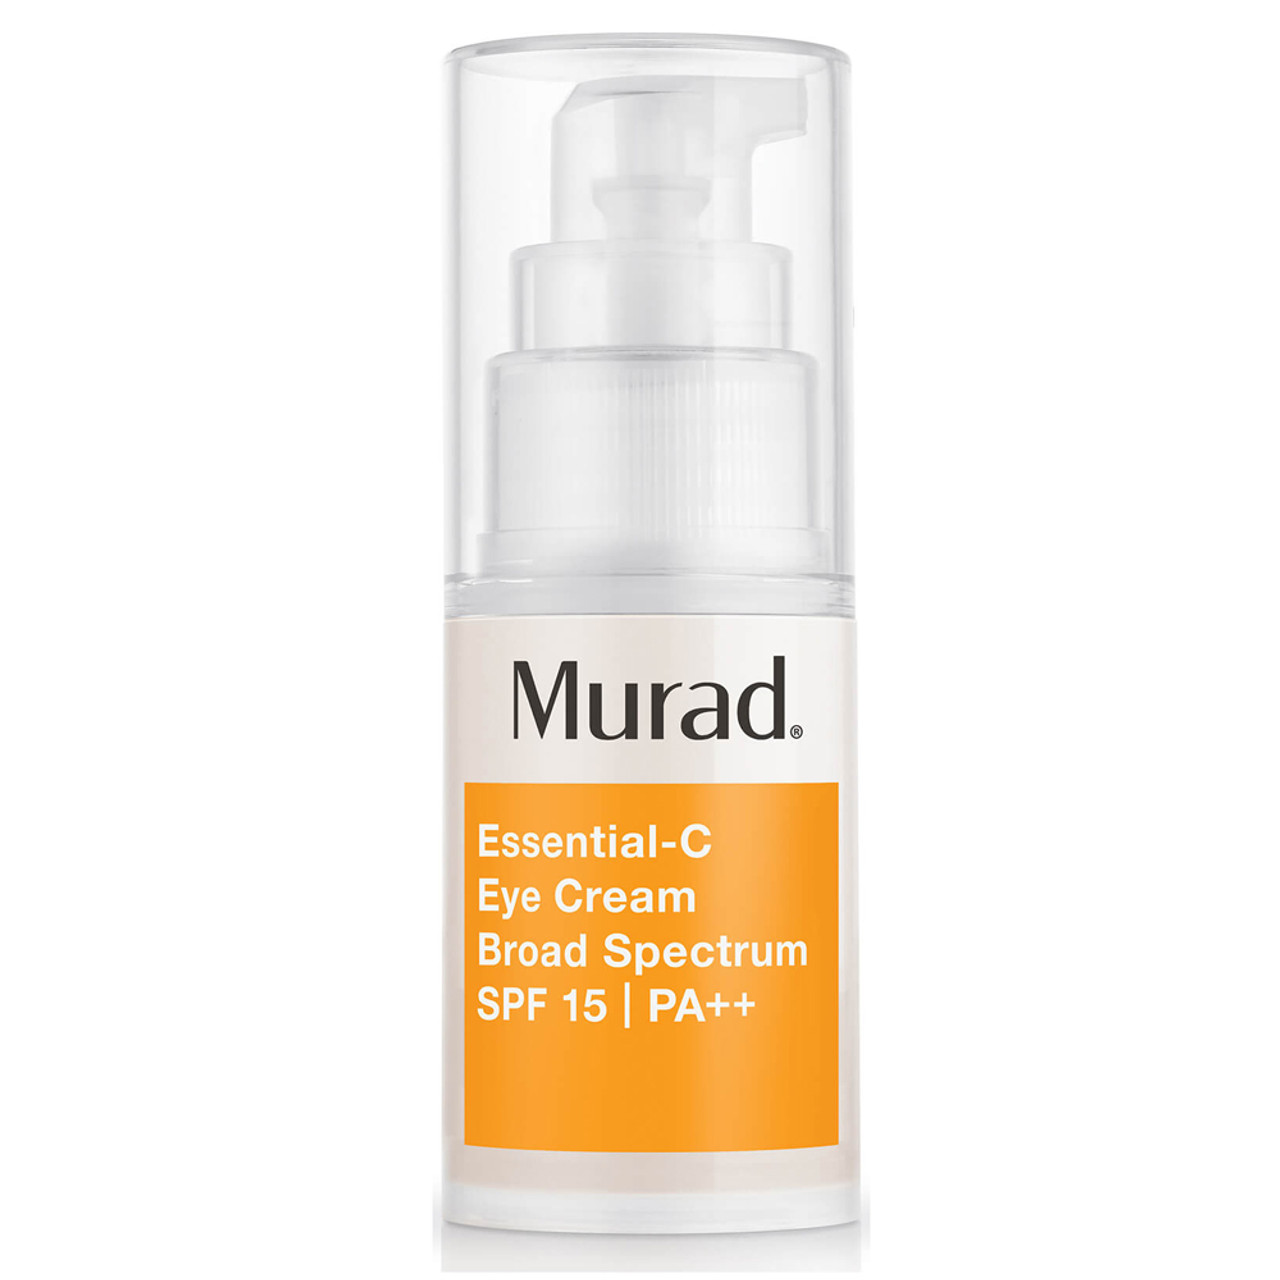 Murad Environmental Shield™ Essential-C Eye Cream SPF 15